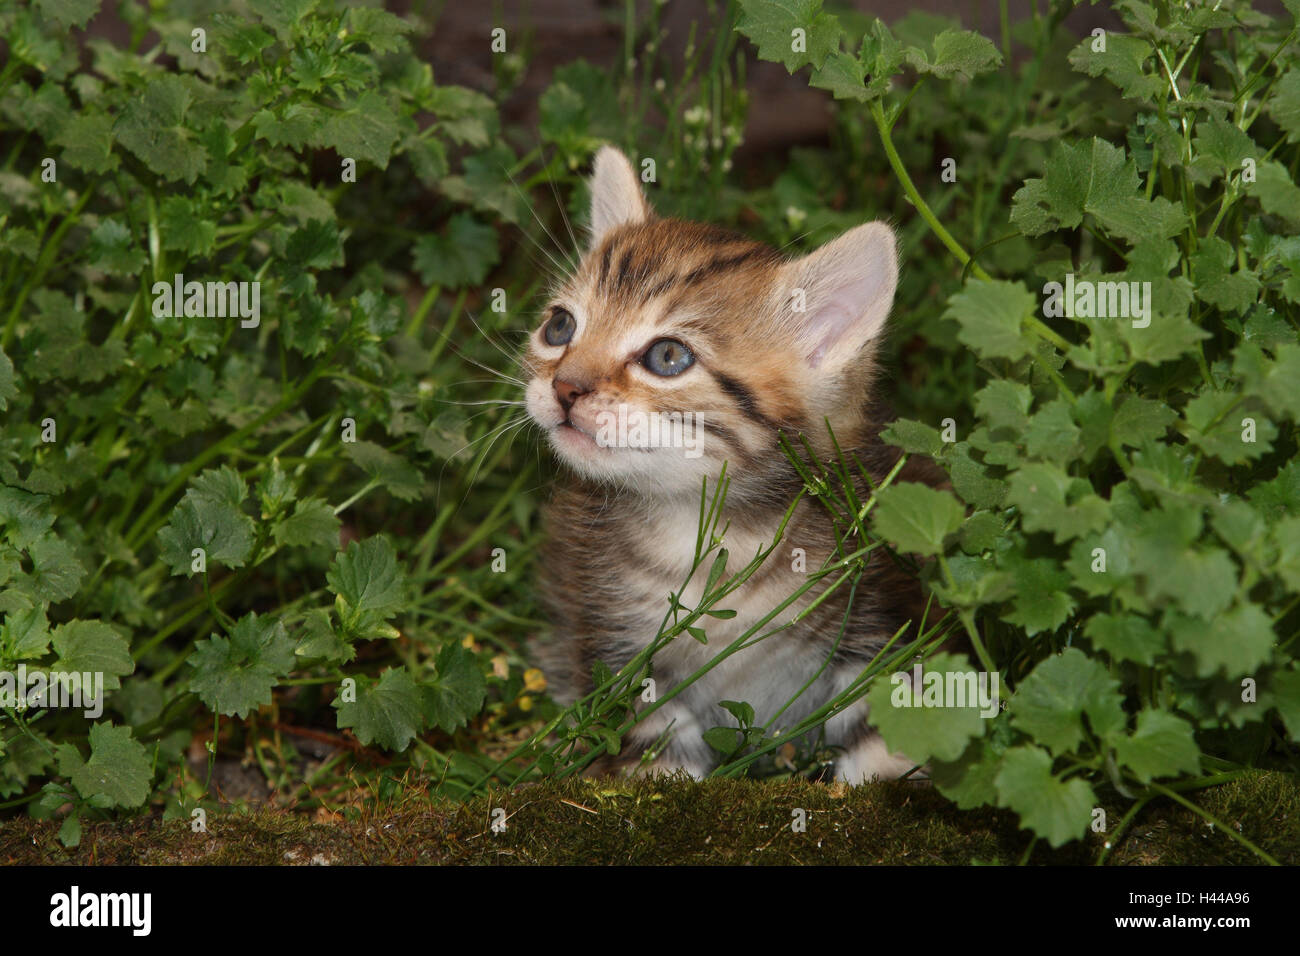 Cat, young, sit, meadow, garden, animals, mammals, pets, small cats, Felidae, domesticates, house cat, young animal, - Stock Image